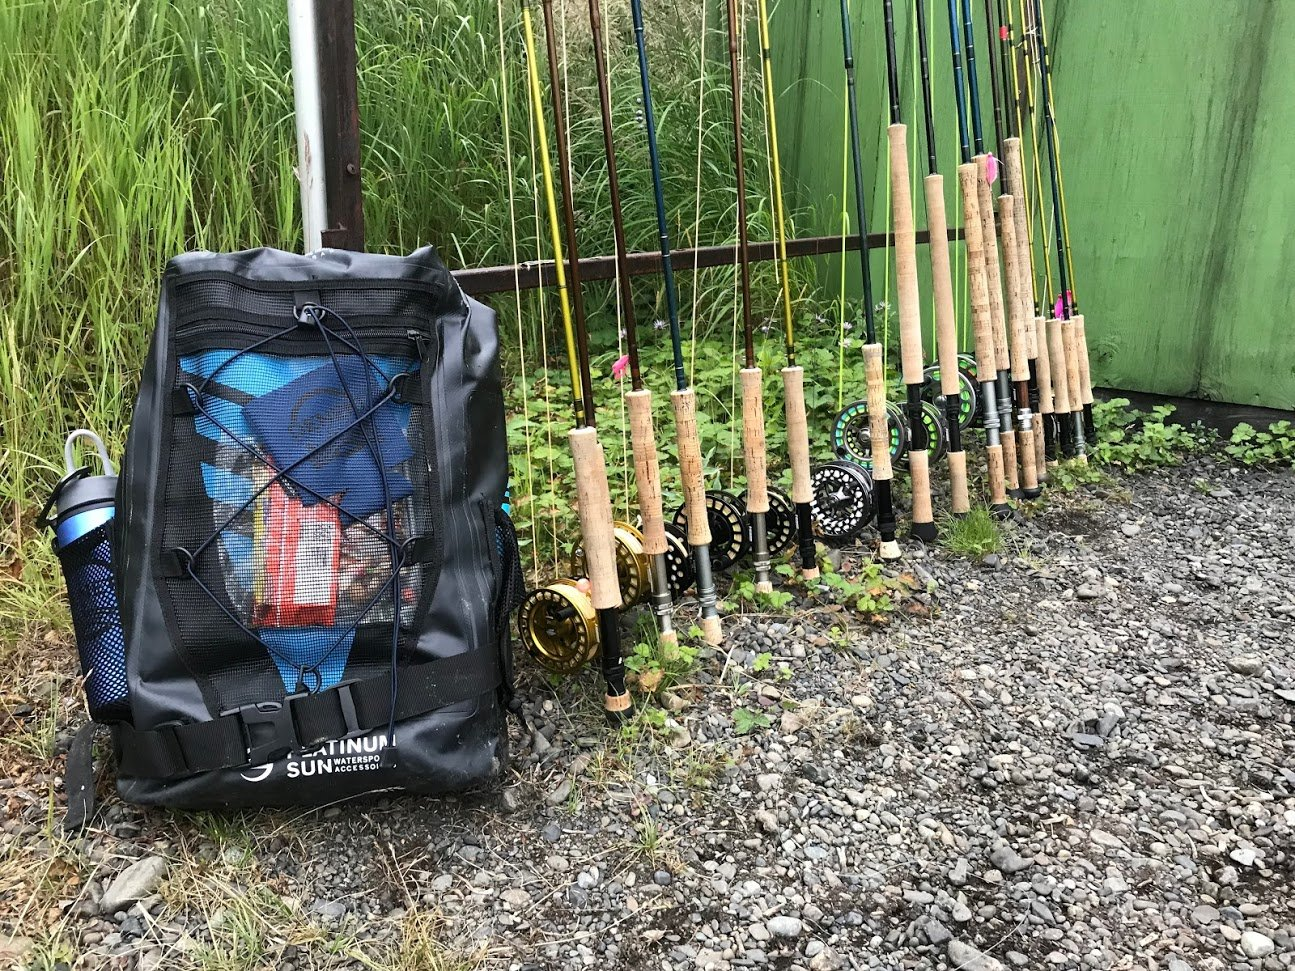 rods for using arctic char flies